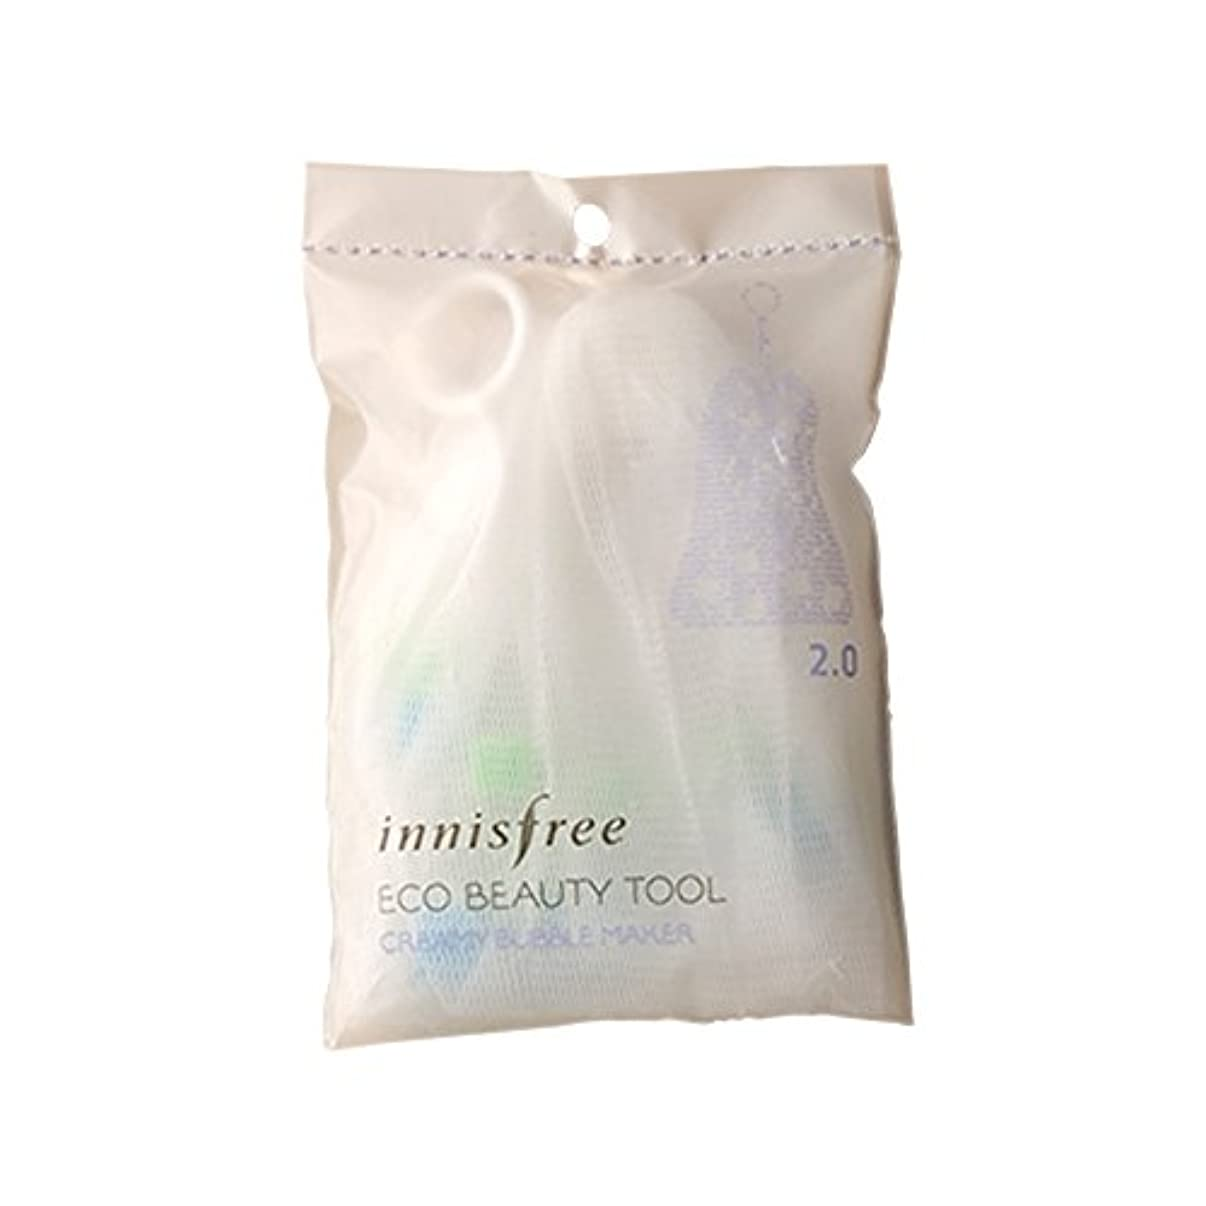 ピック工業用調停する(6 Pack) INNISFREE Eco Beauty Tool Creamy Bubble Maker (並行輸入品)